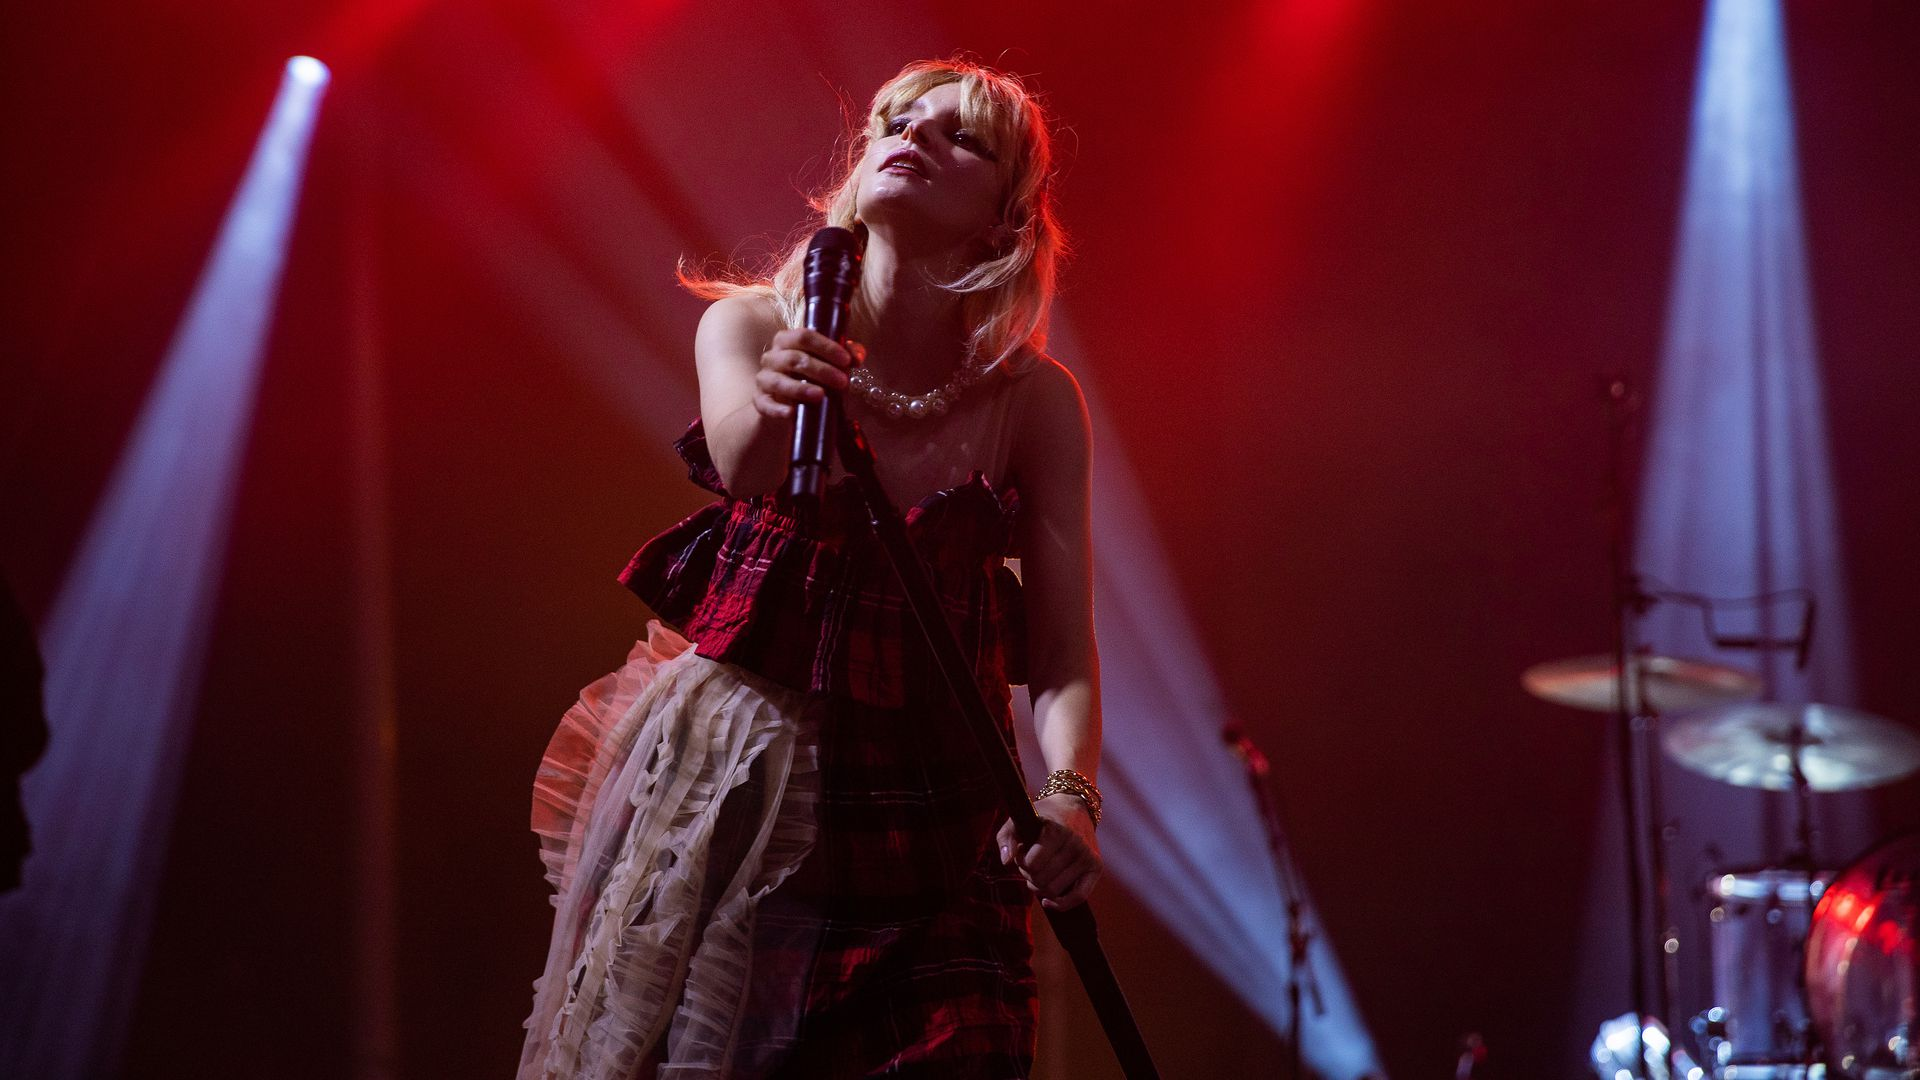 Lauren Mayberry of Chvrches performs on stage during Day In Day Out music festival at Seattle Center on September 05, 2021 in Seattle, Washington.